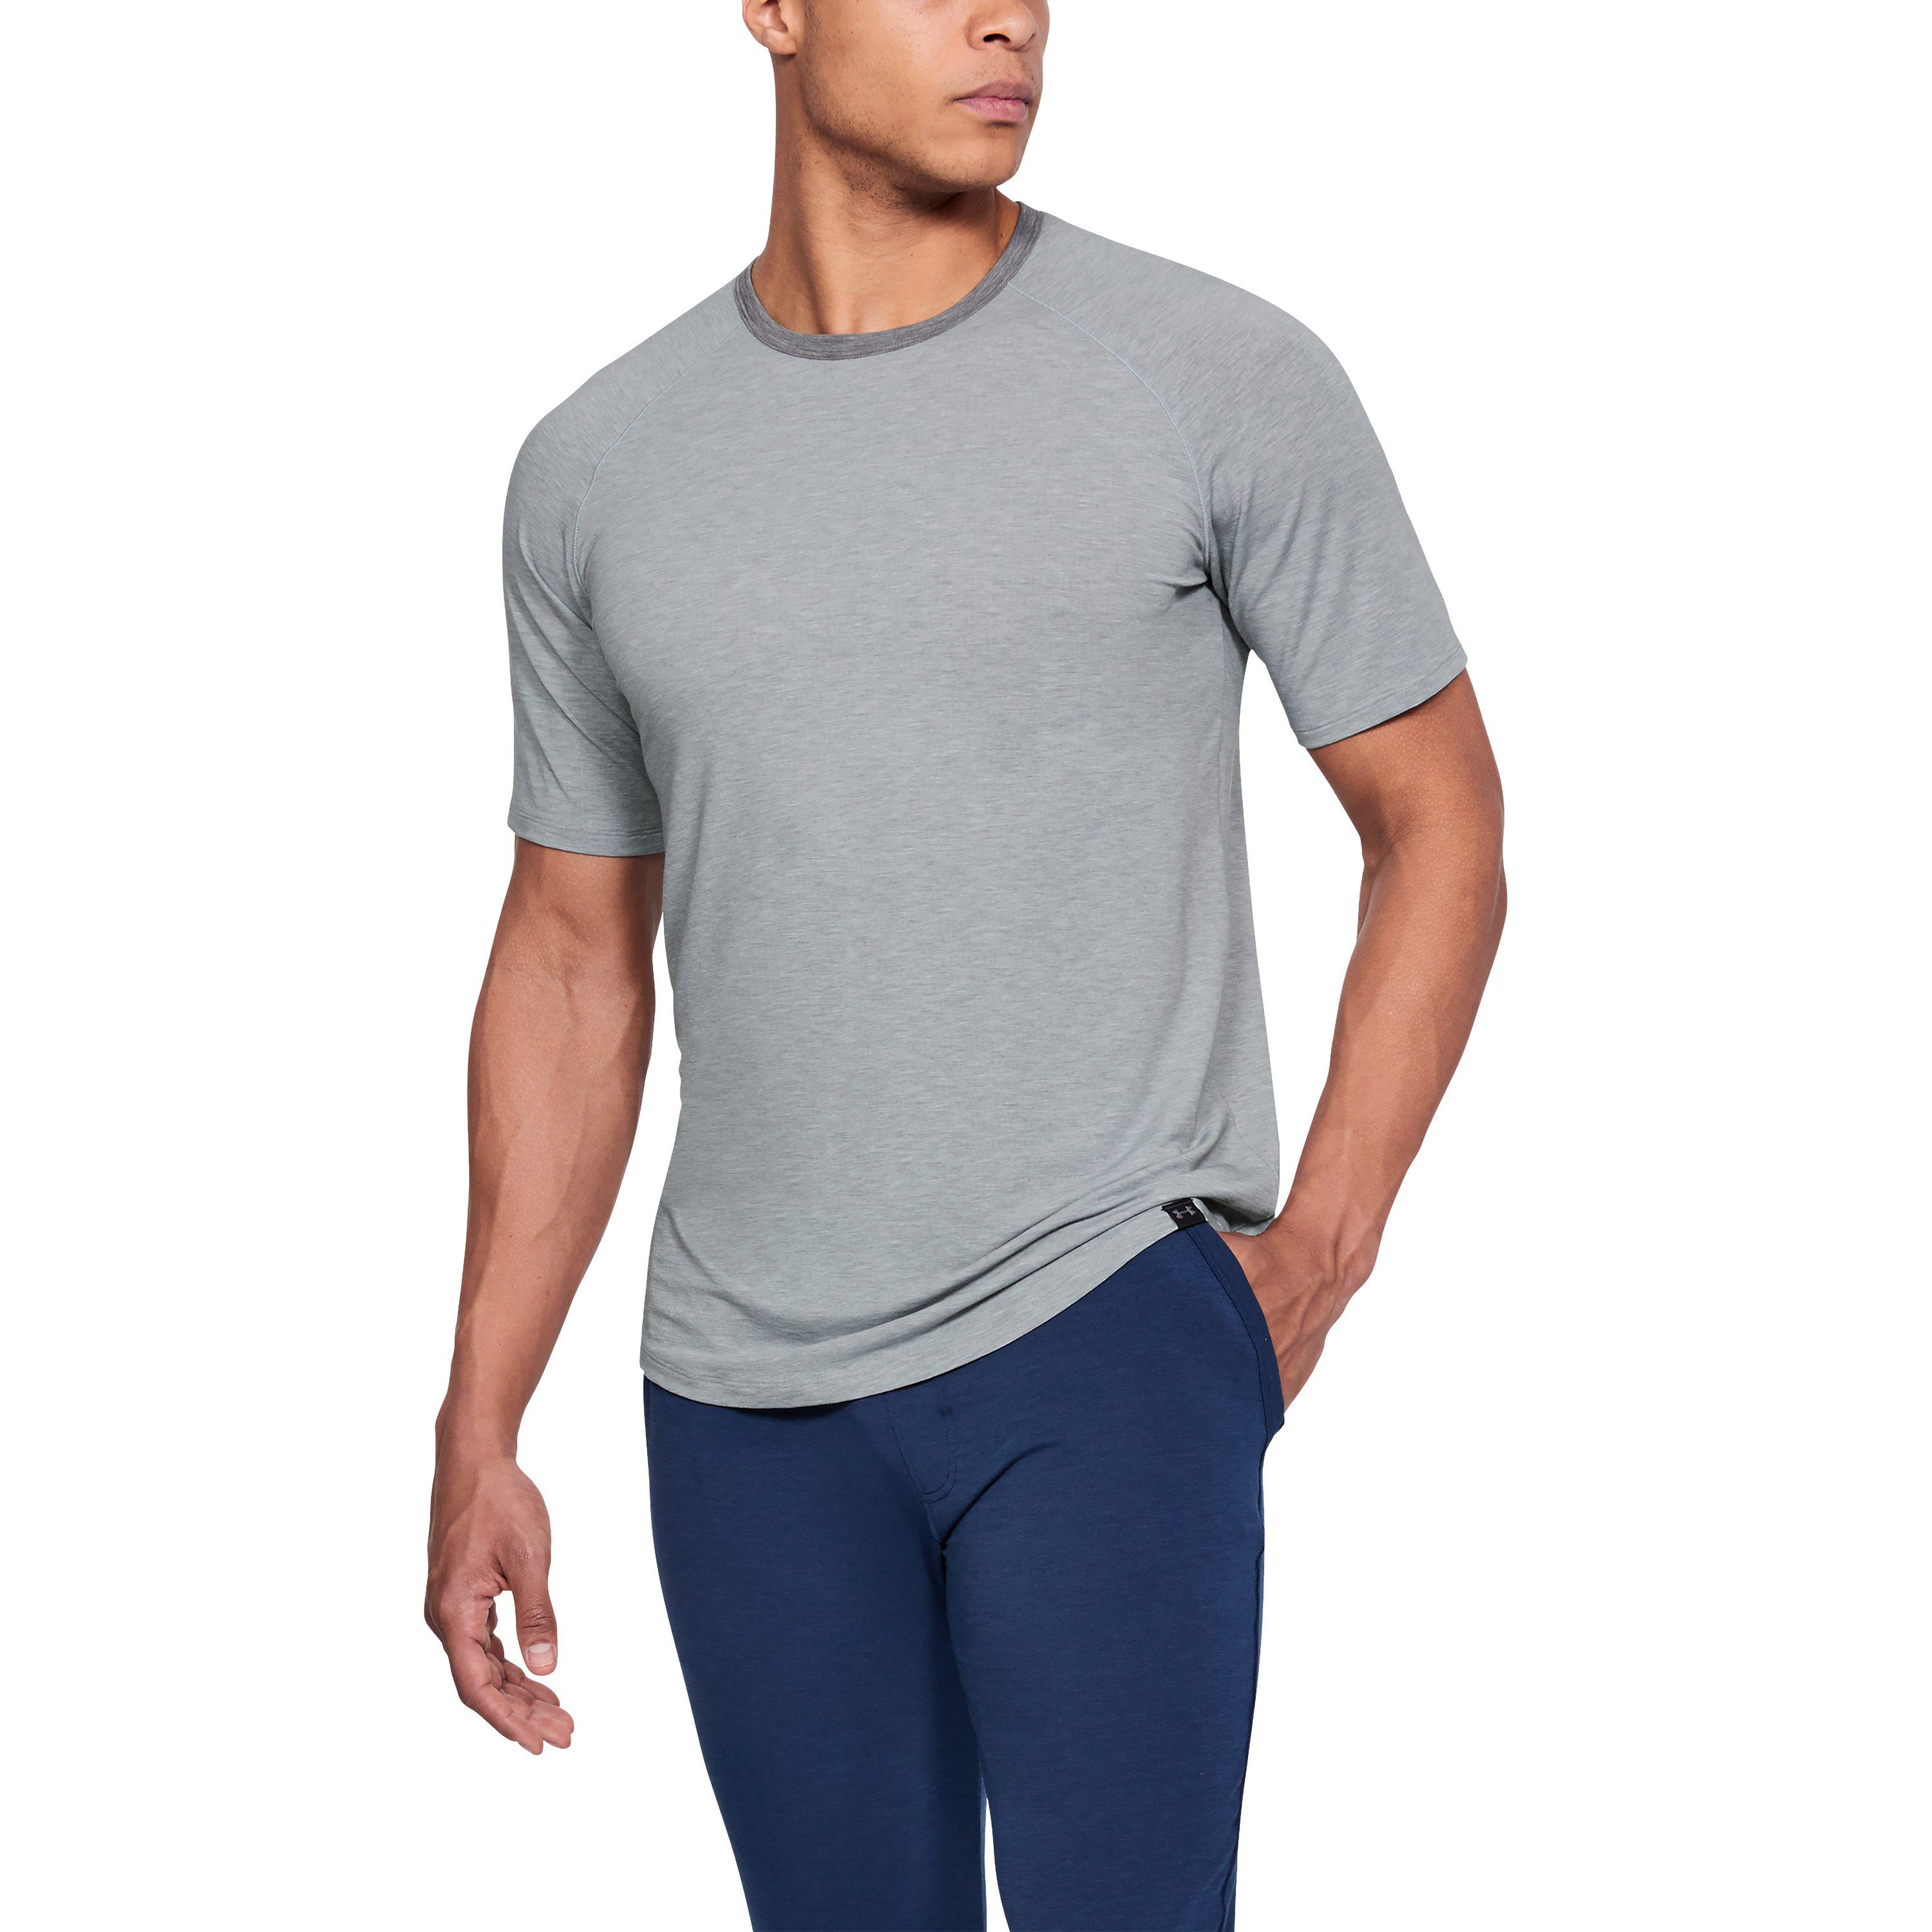 Lyst - Under Armour Men s Athlete Recovery Sleepwear V2 Crew in Gray ... eee7a49a3